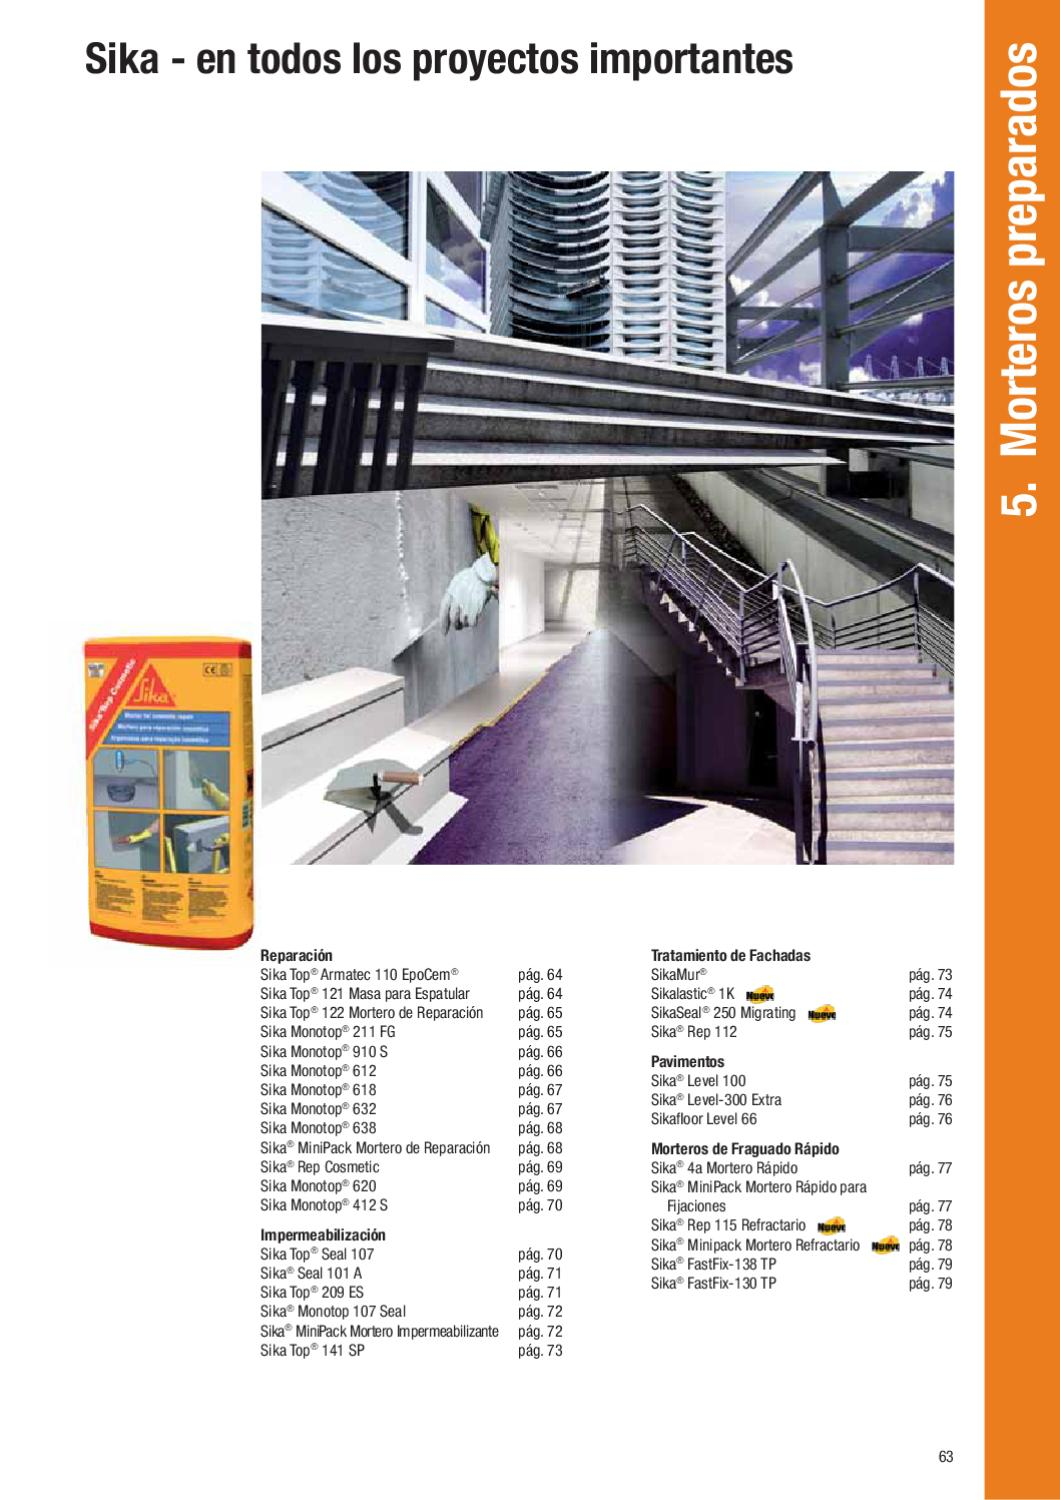 Gu a productos 2011 by sika es page 64 issuu - Sika monotop 620 ...